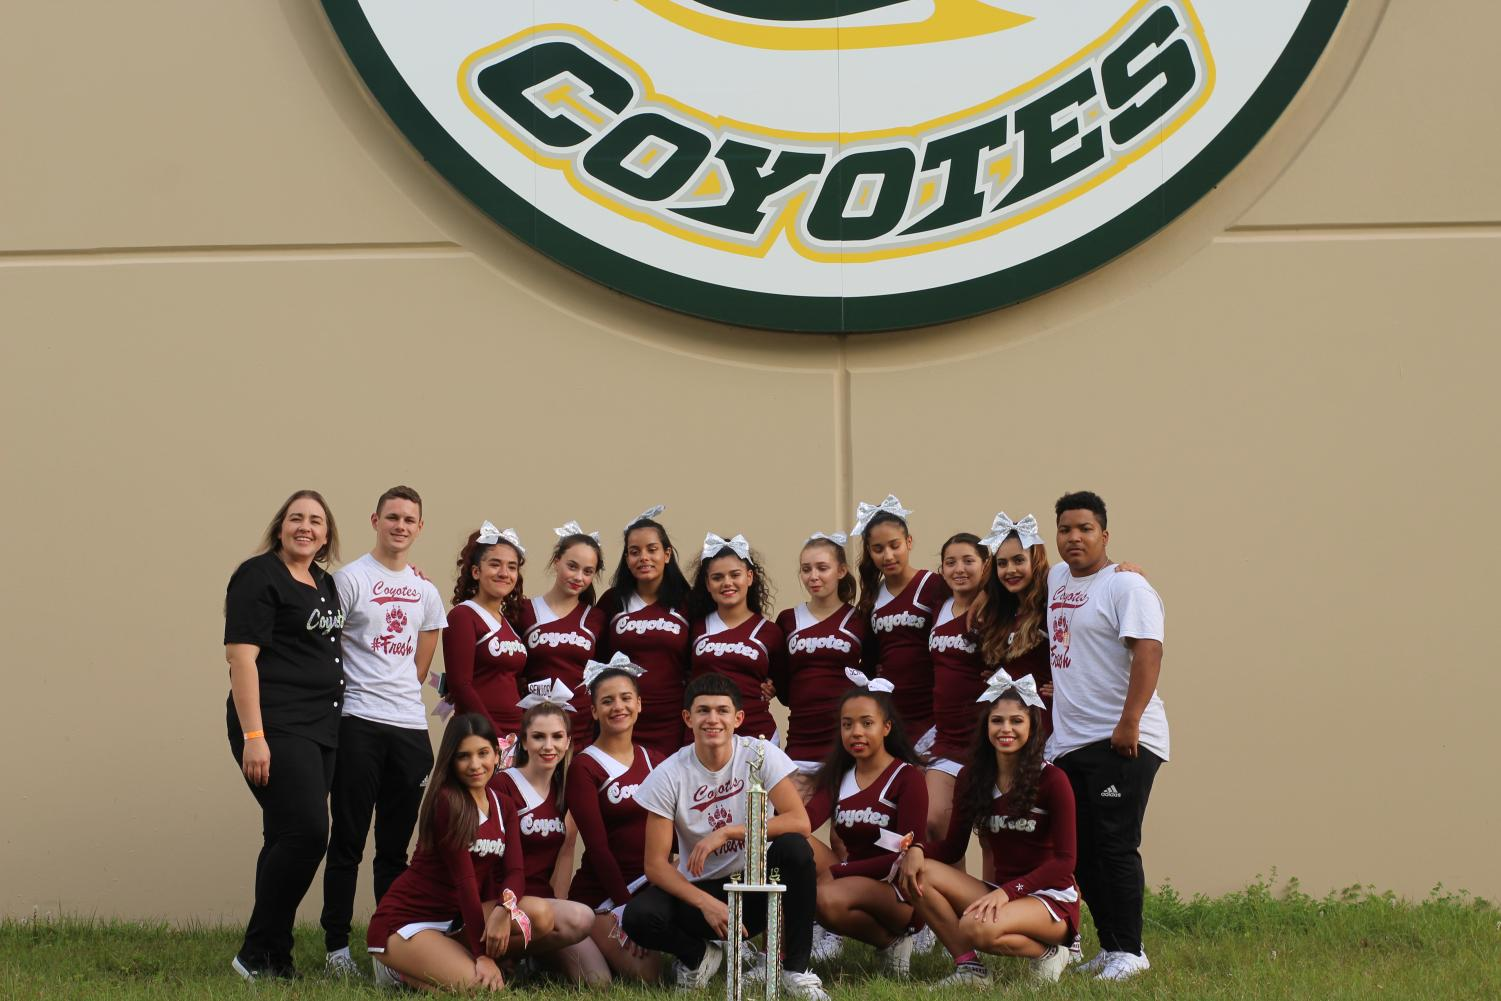 The Cheer squad poses with the 1st place trophy after their victory.